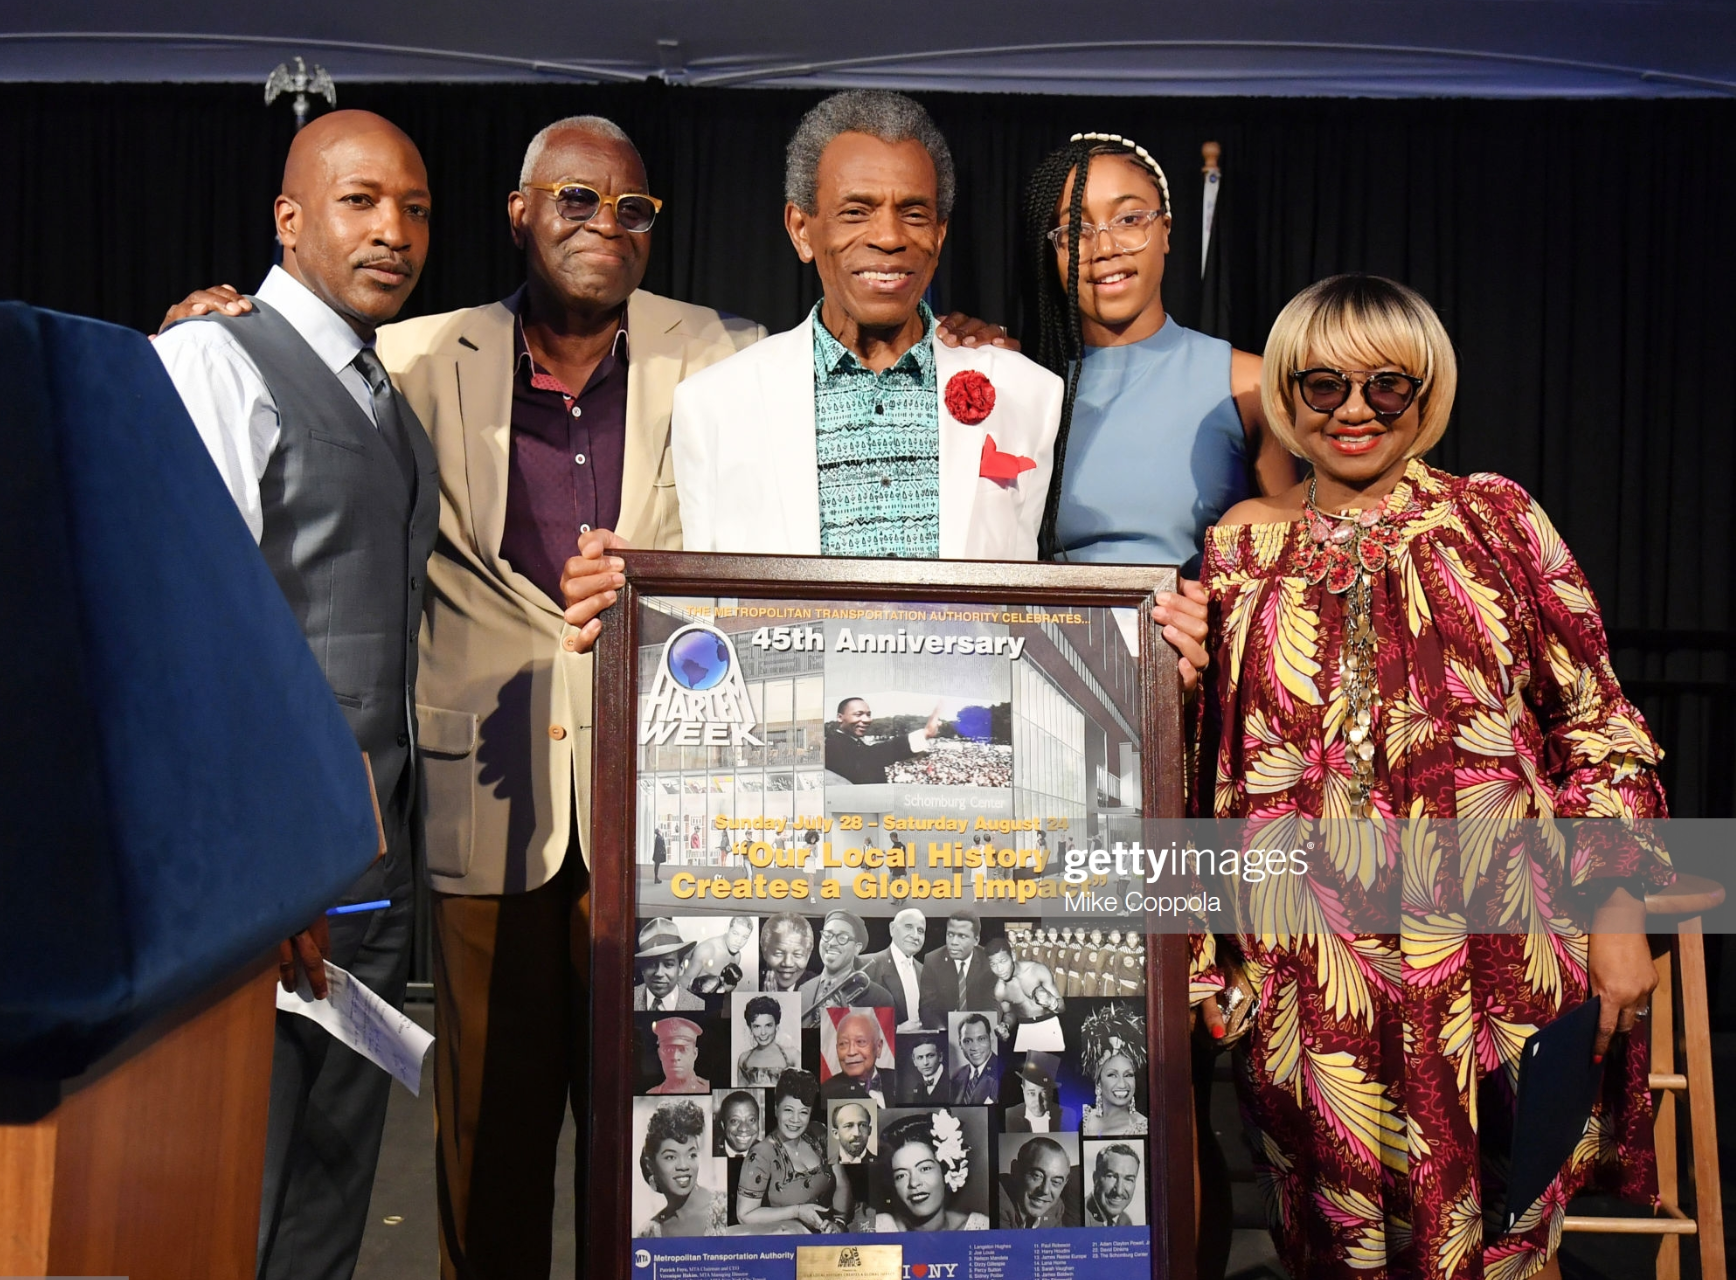 Antwan Lewis, Voza Rivers, Andre De Shields, Joyous Pierce, and guest appear onstage as Harlem, New York City And New York State honor Memphis' 200th Anniversary celebrating %22A New Century Of Soul%22.png